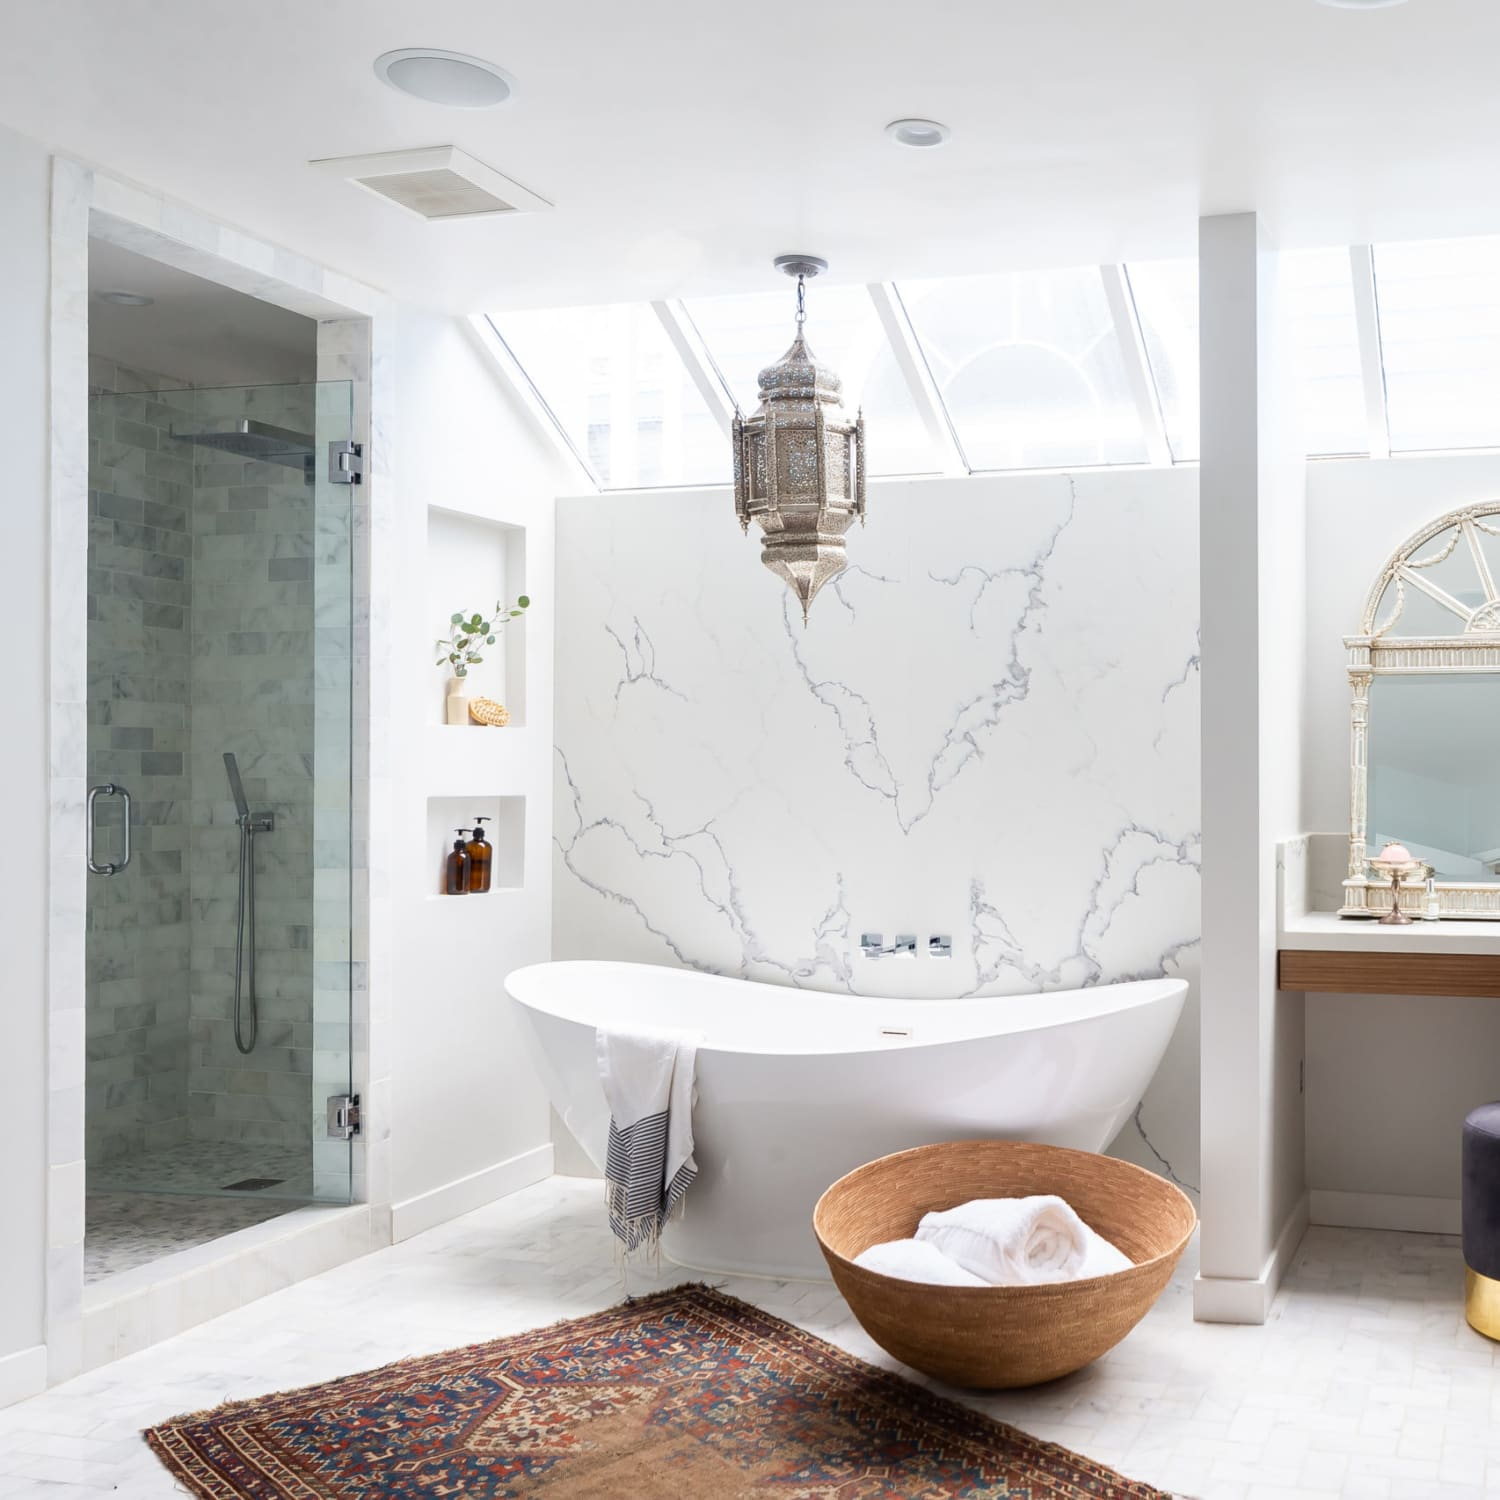 The 10 Biggest Bathroom Trends That Will Shape Your Self Care Regimen In 2021 Apartment Therapy